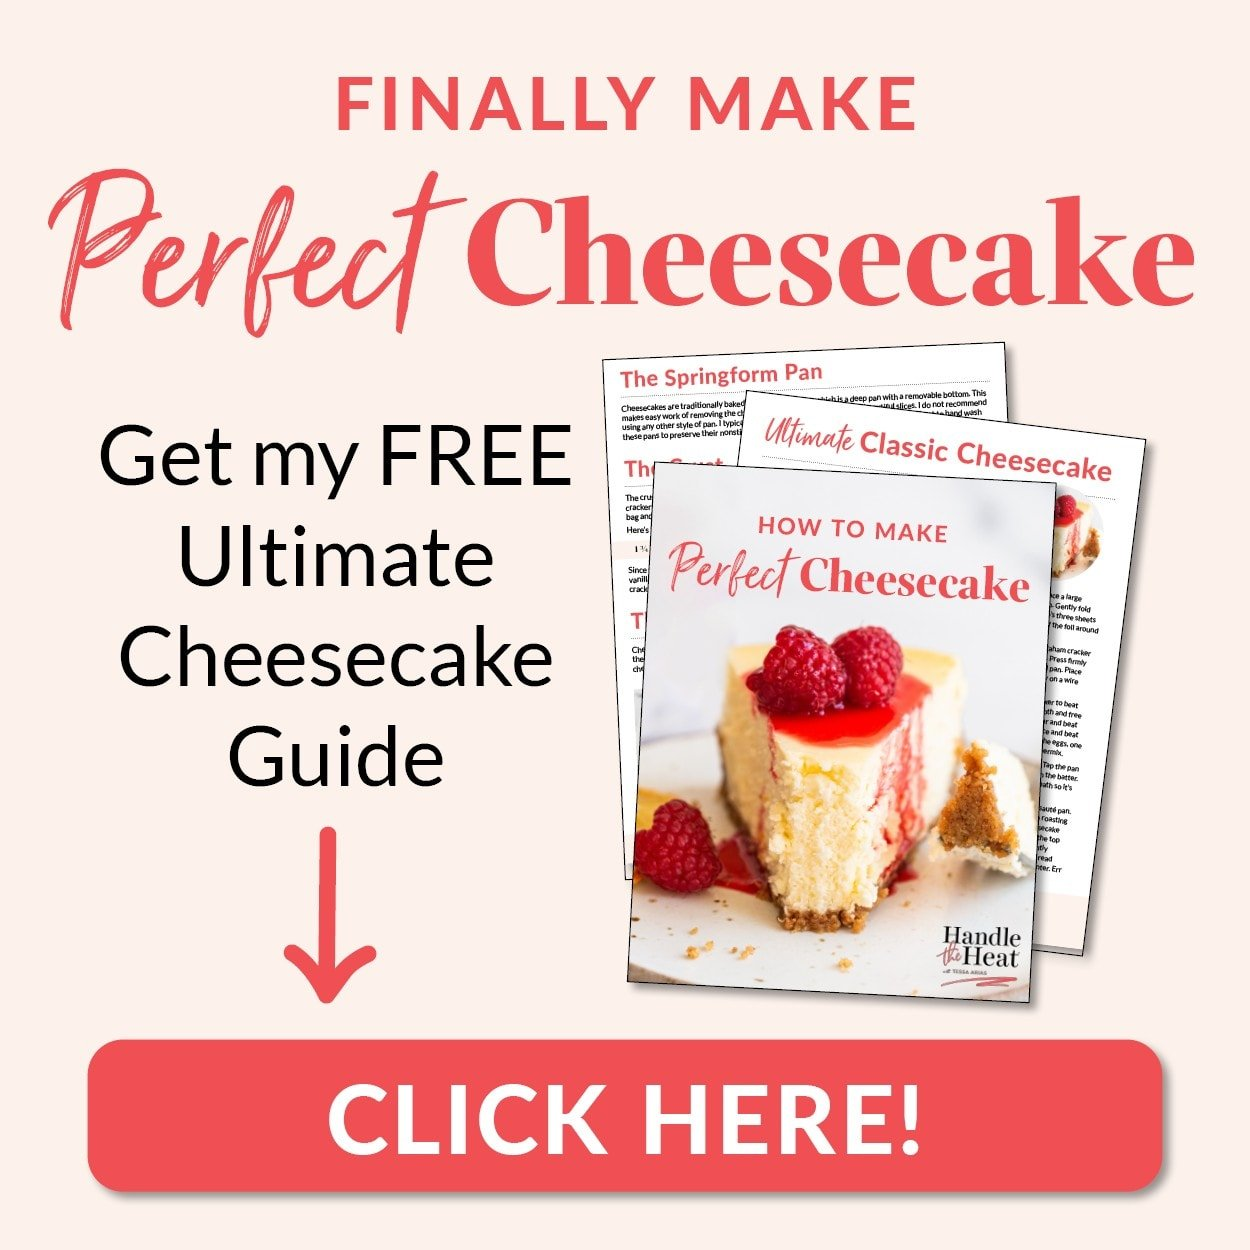 Perfect Cheesecake Guide